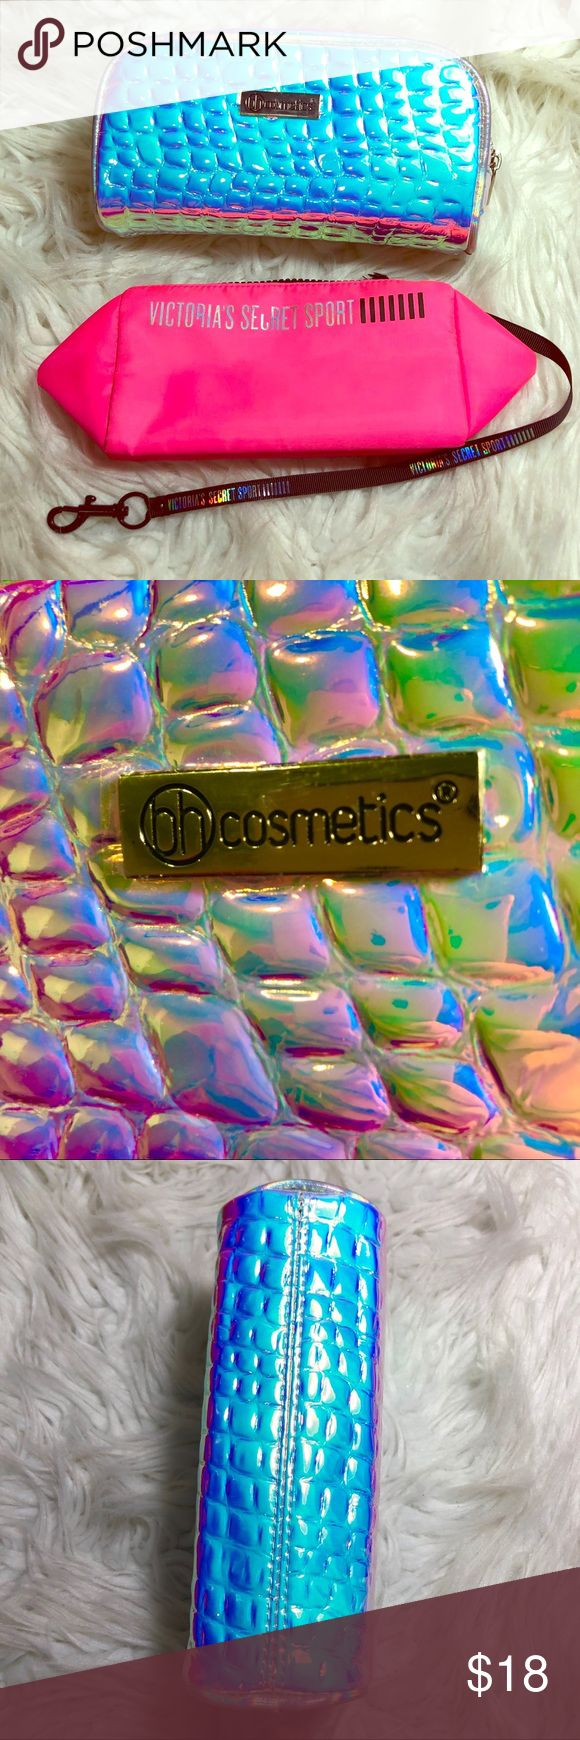 BH Cosmetic Holographic bag & free VS sport Holographic